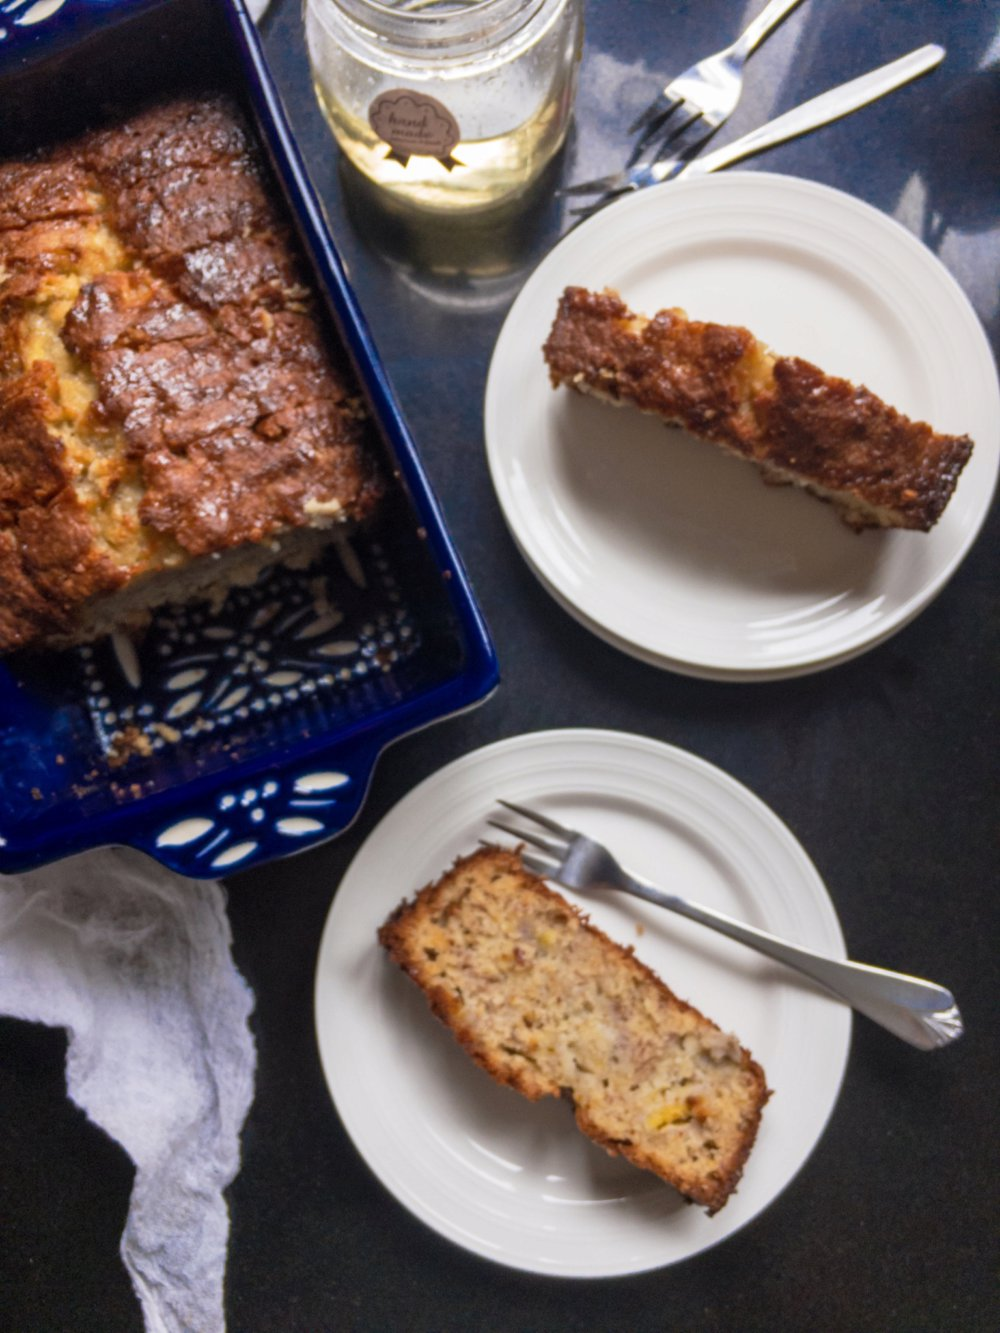 Best Ever Banana Bread with Orange Blossom